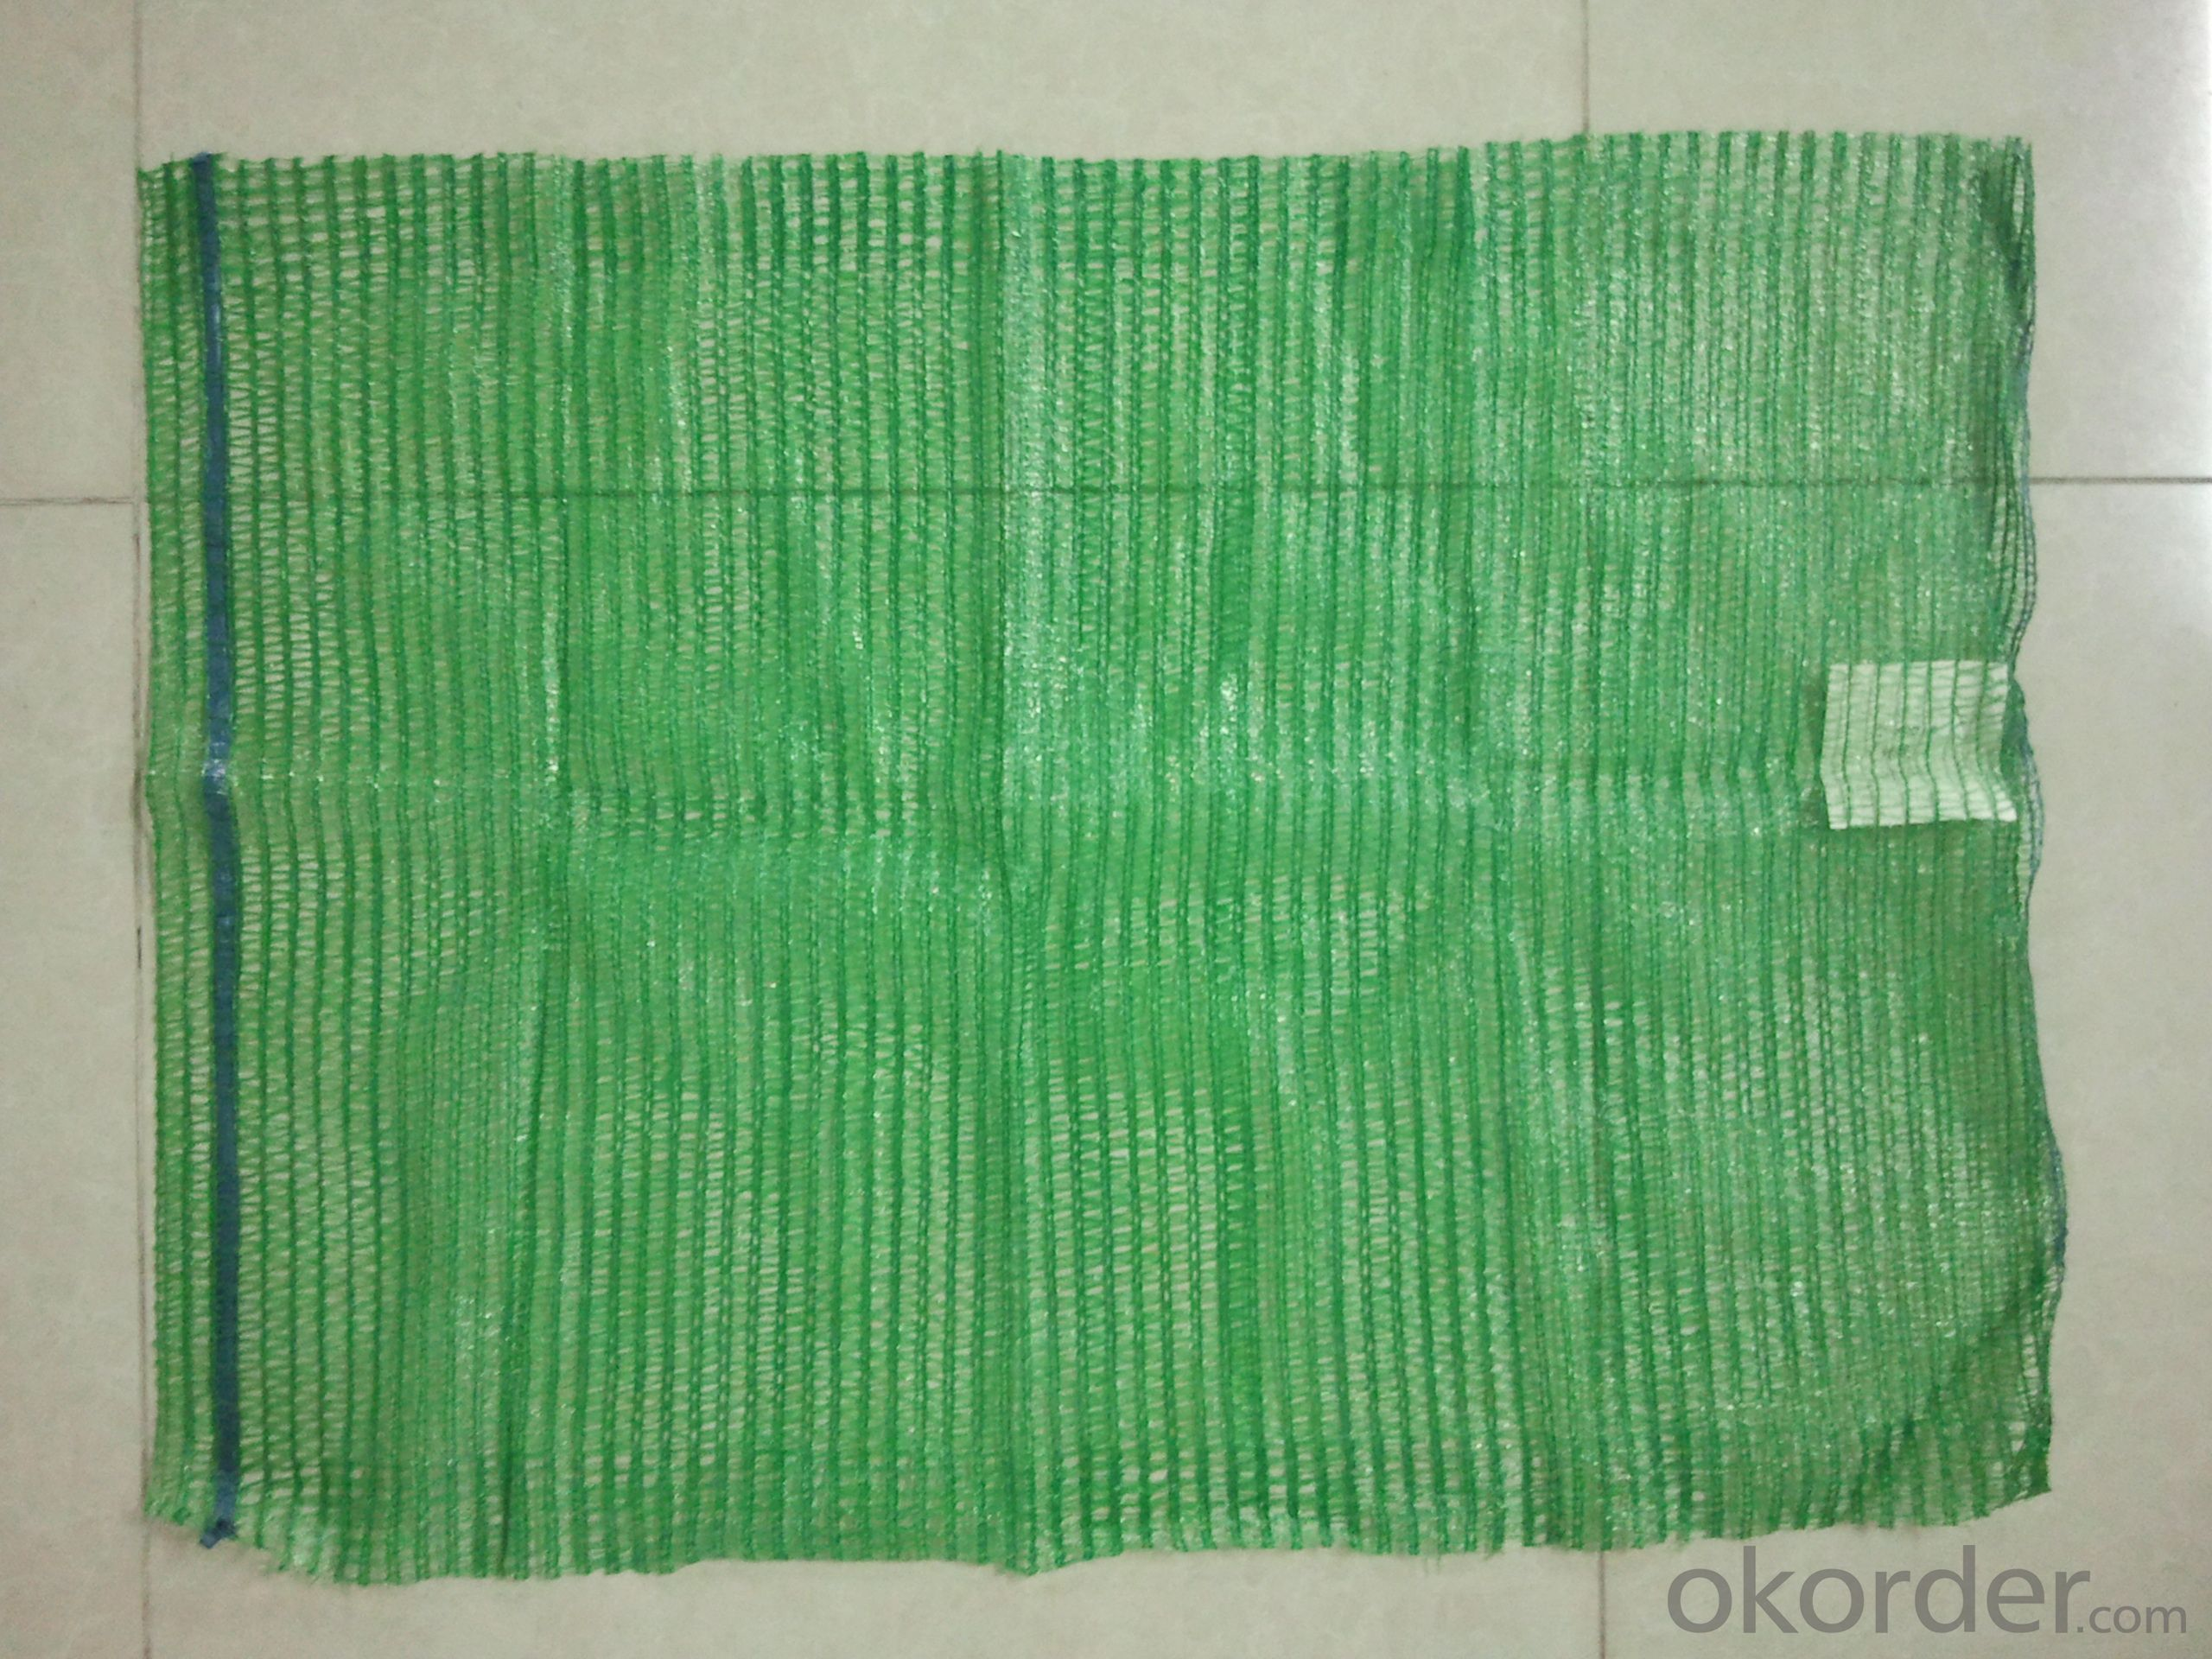 PP leno mesh bag for cabbage China, green colour